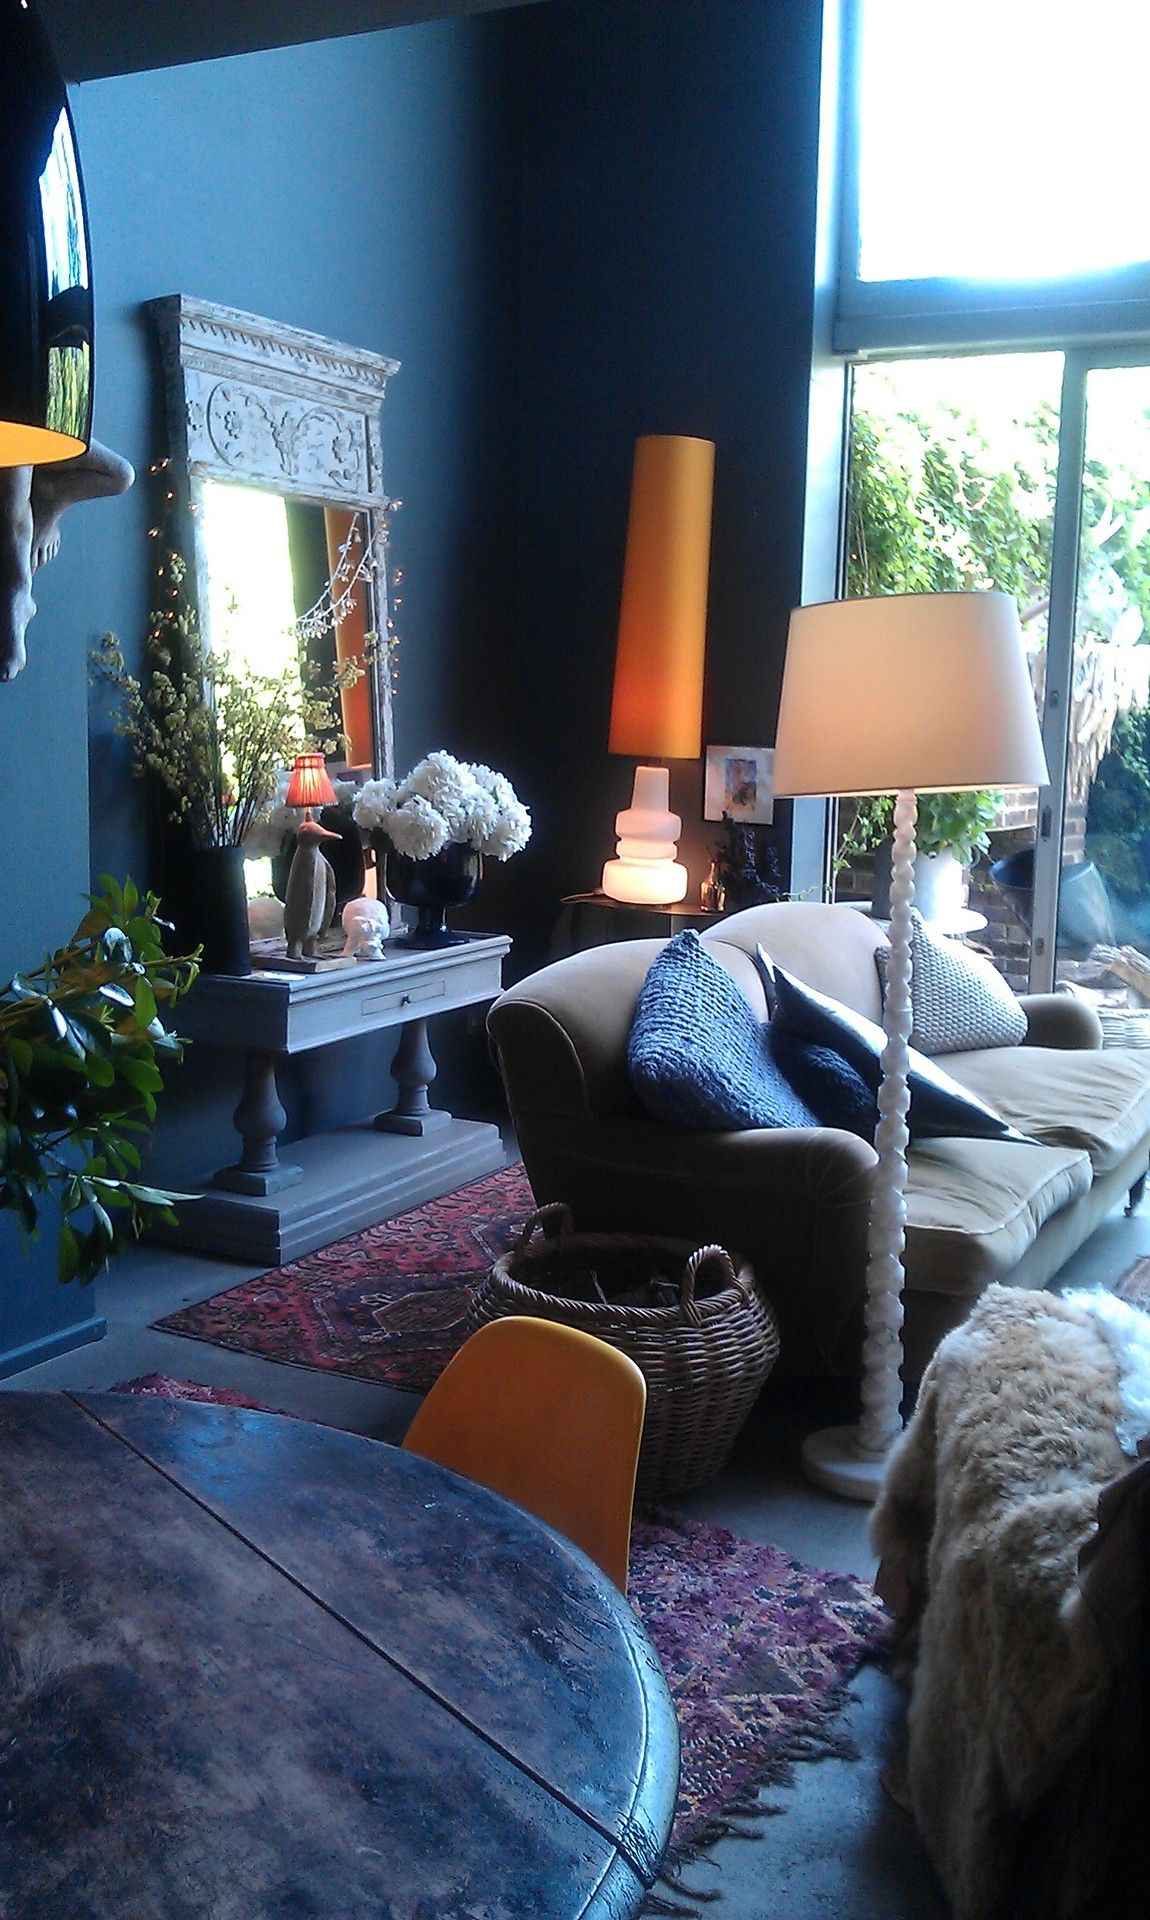 Dark Living Room Ideas: At The Corner Down The Street